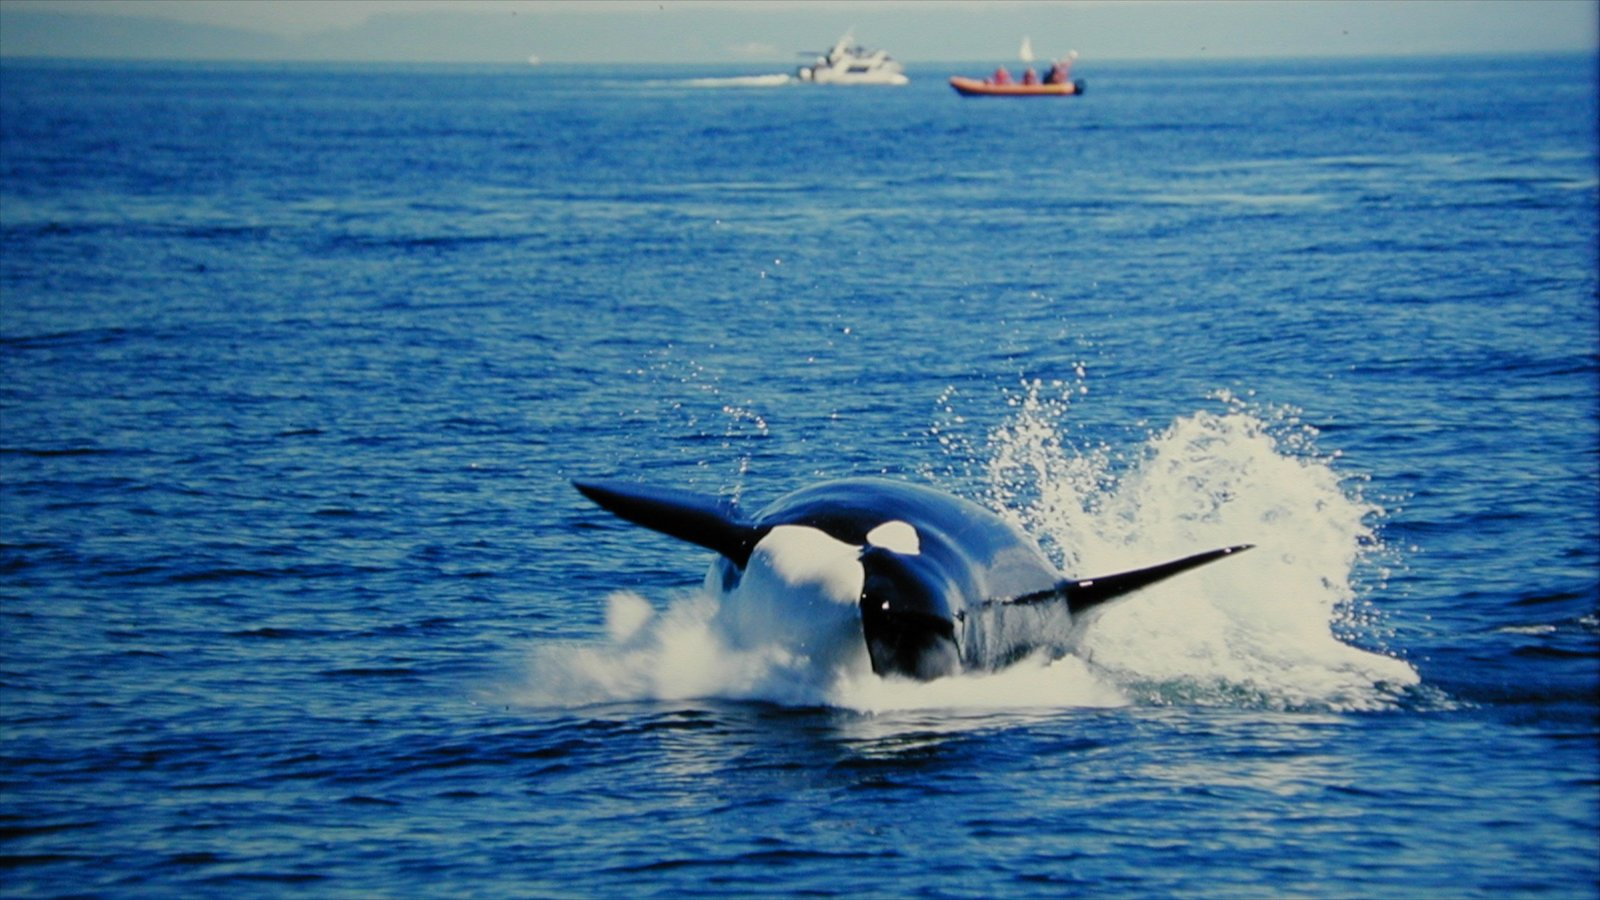 Vancouver showing whale watching, marine life and general coastal views